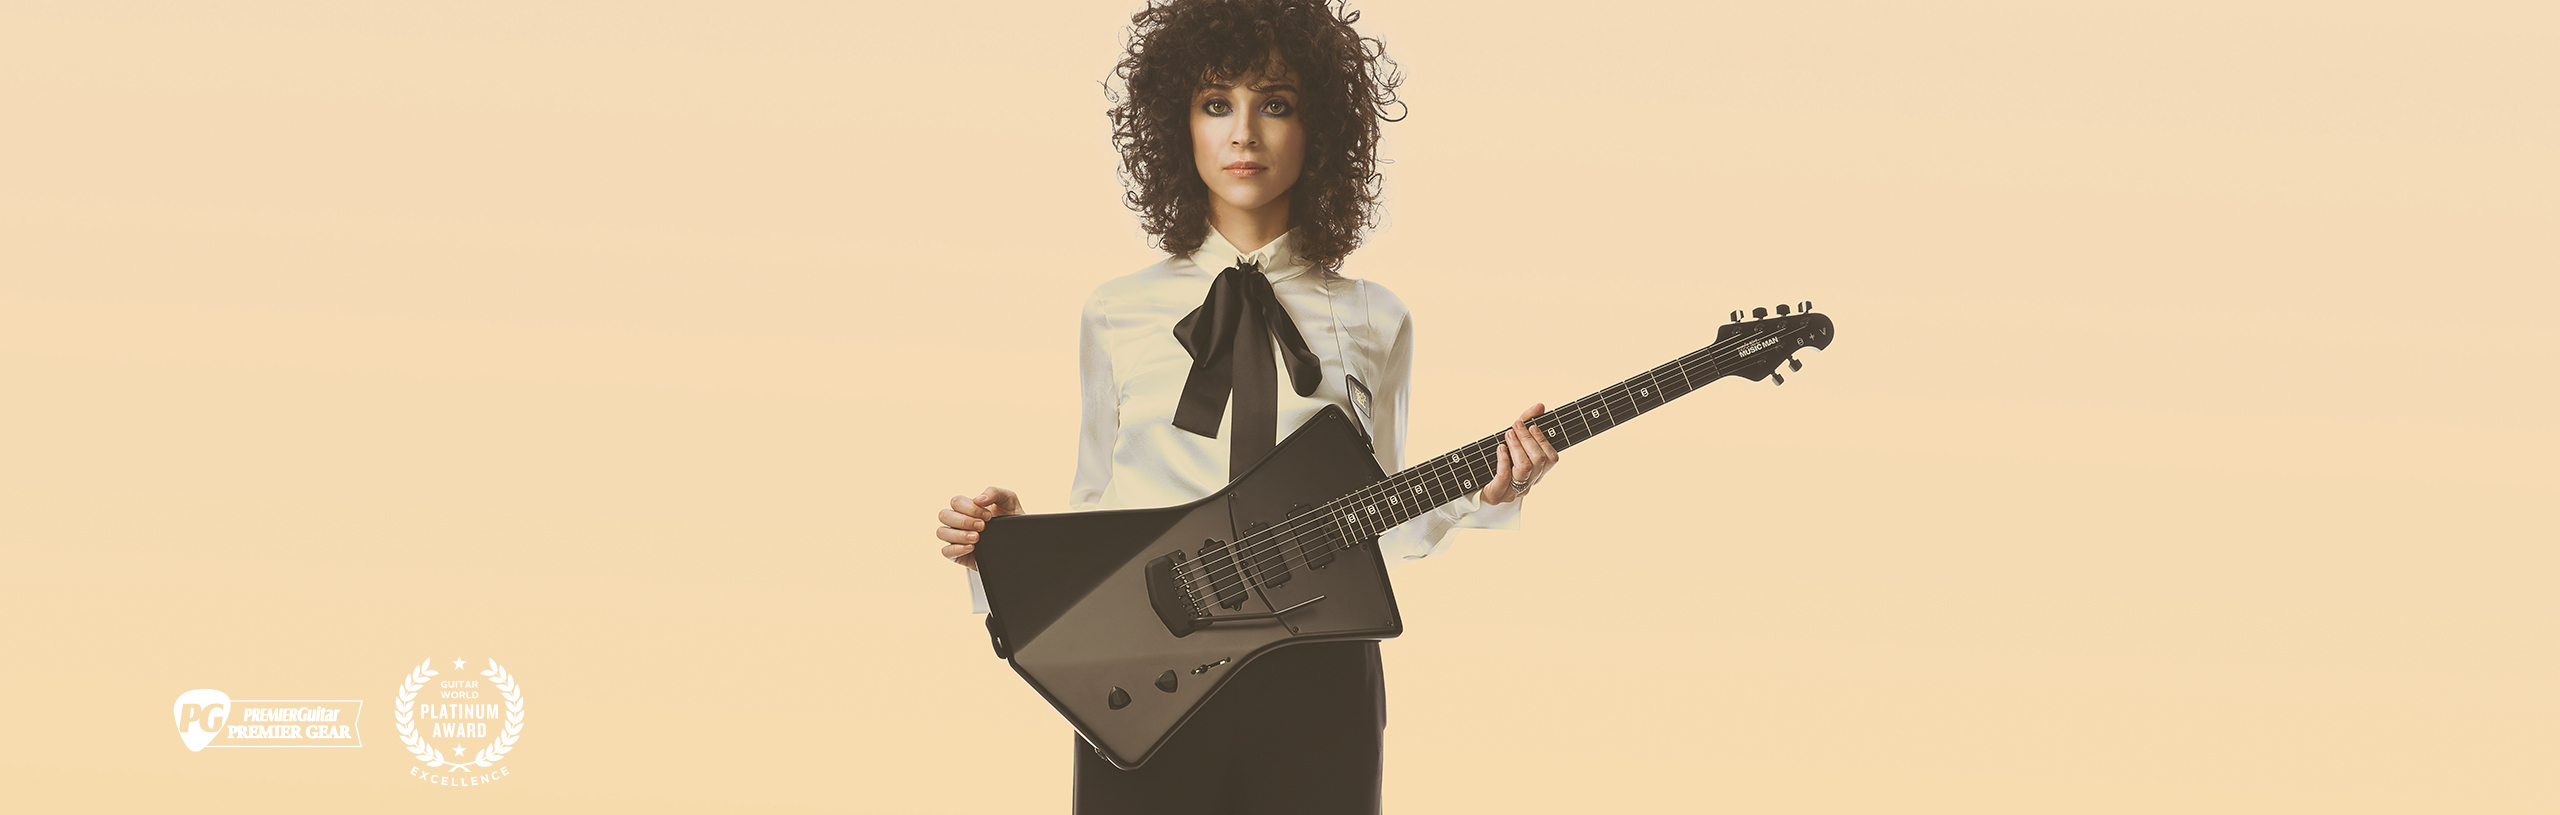 St. Vincent Hero Image